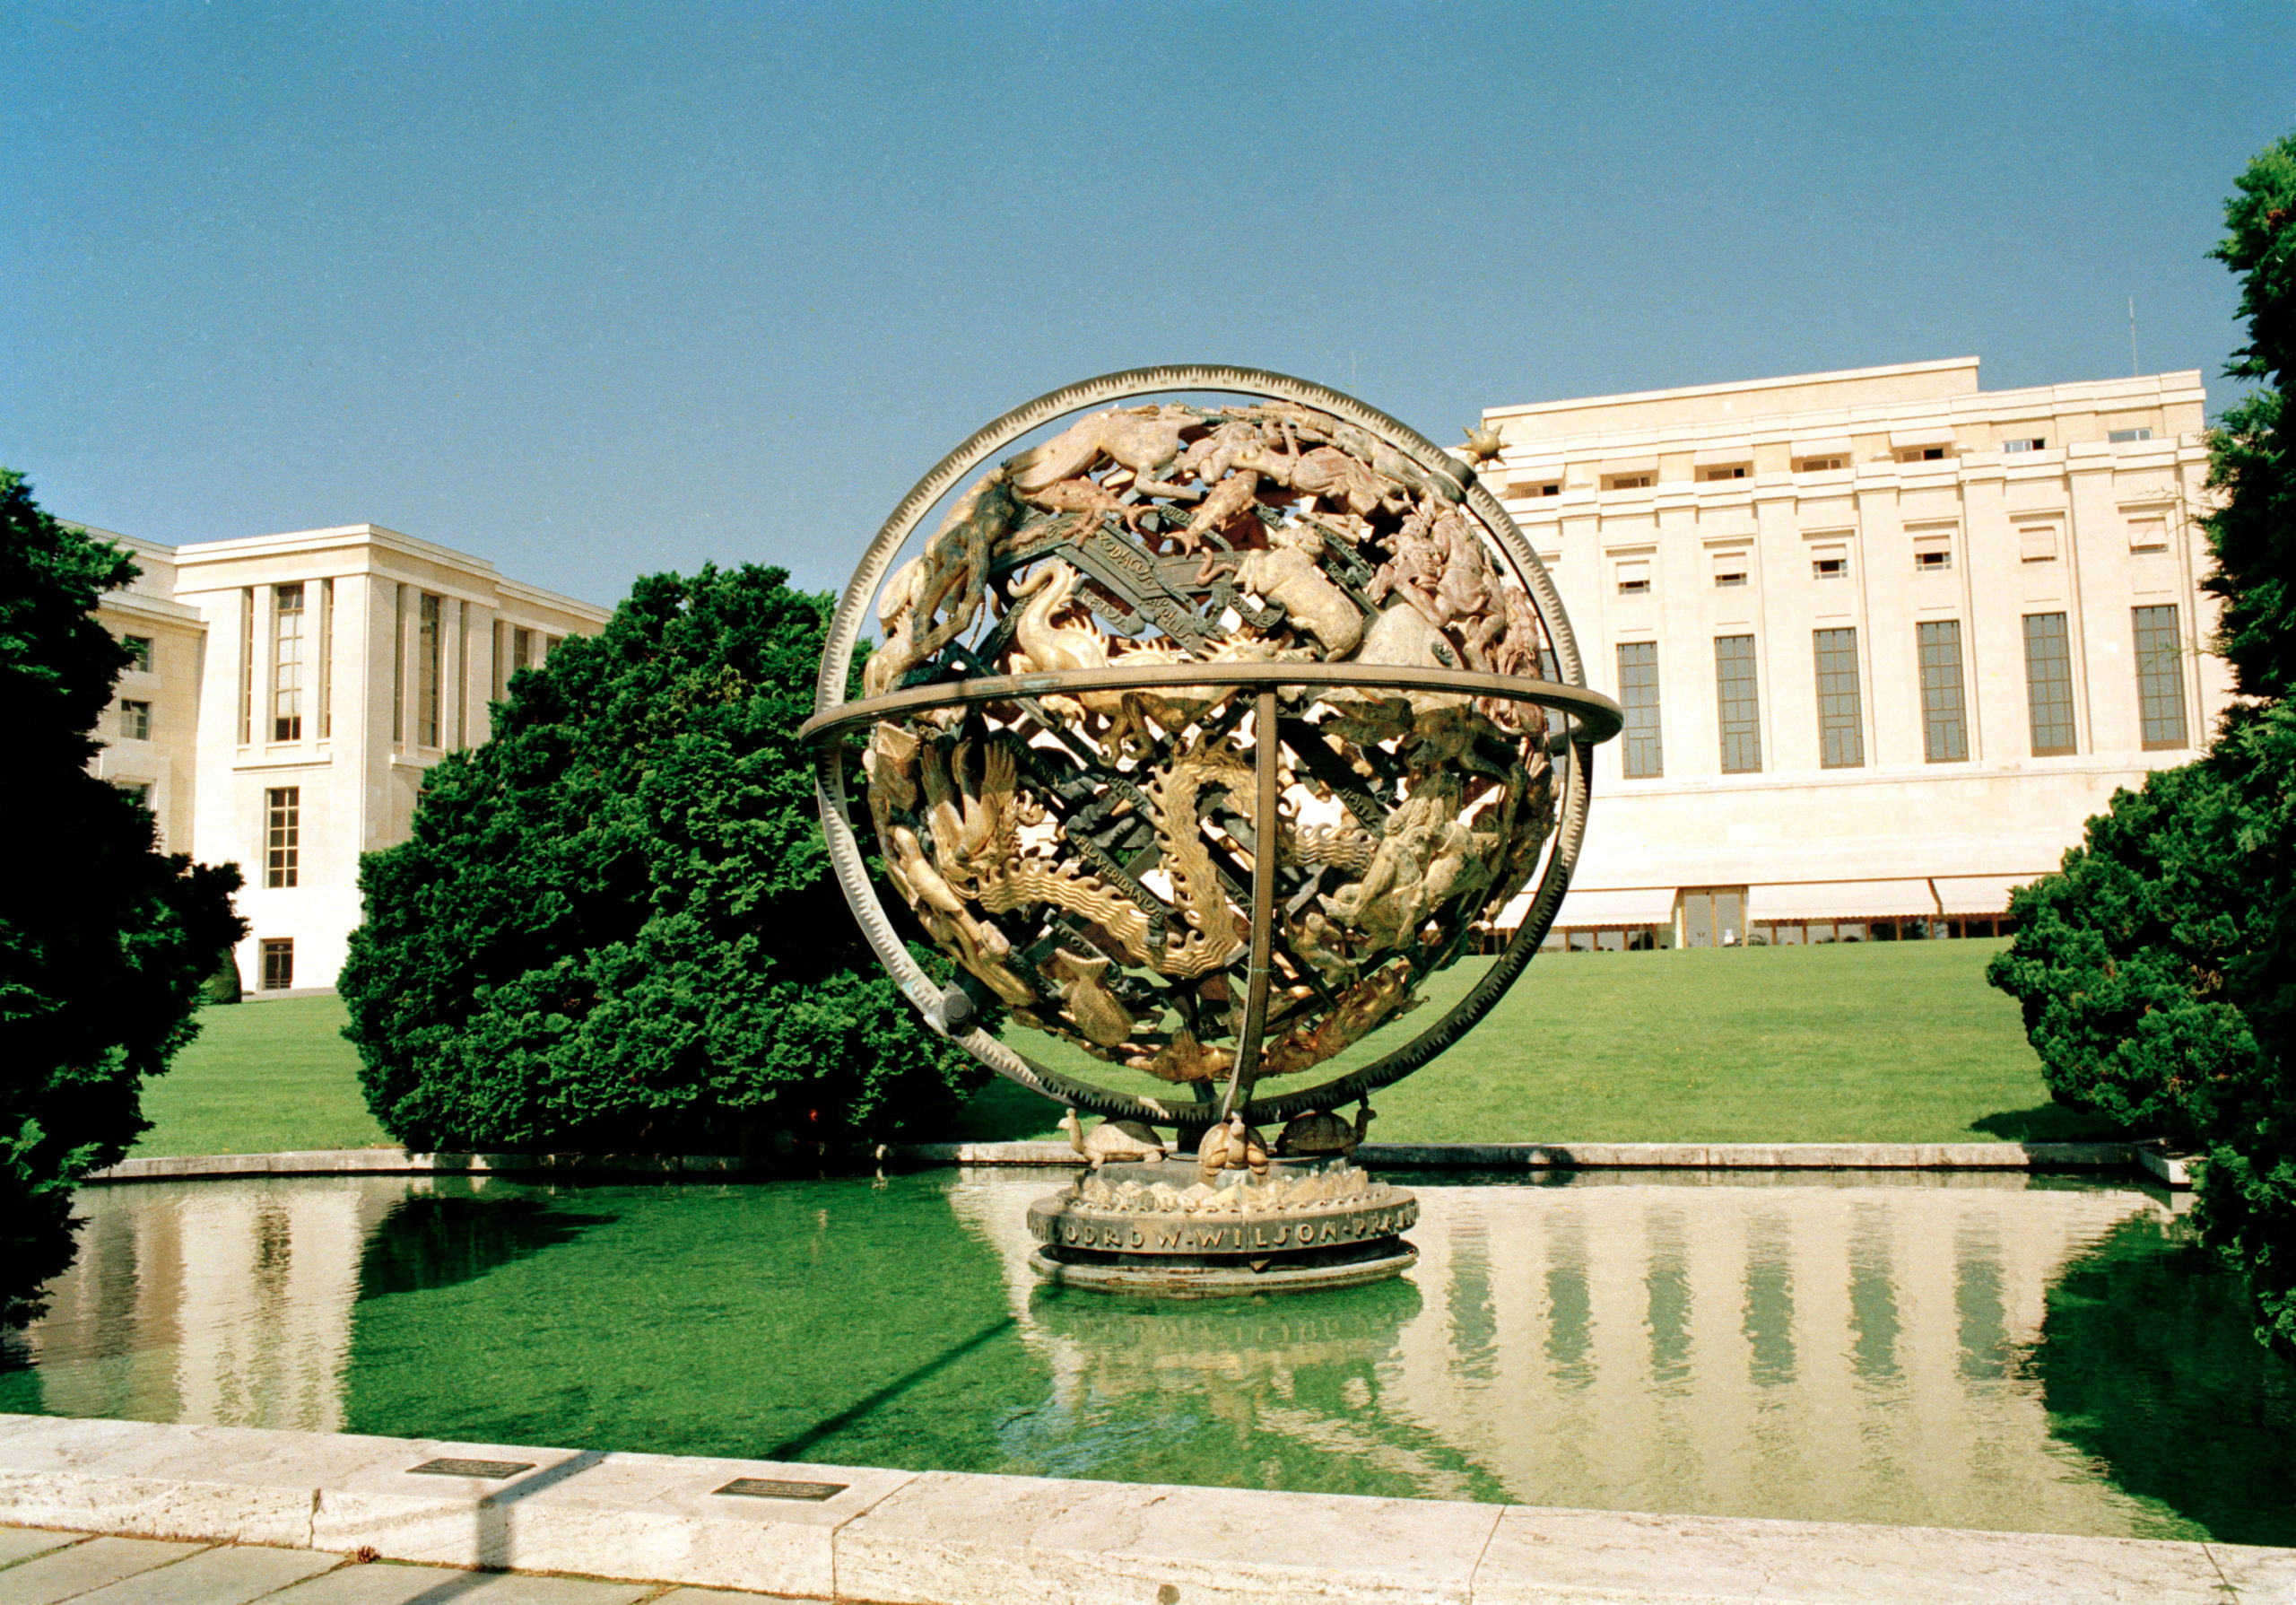 A view of the Palais des Nations with the Manship Sphere in the foreground. The Sphere was designed by Paul Manship, an American sculptor and donated to the League of Nations by the Woodrow Wilson Foundation. It is made of bronze and represents the signs of the Zodiac. © UN PHOTO/P. KLEE